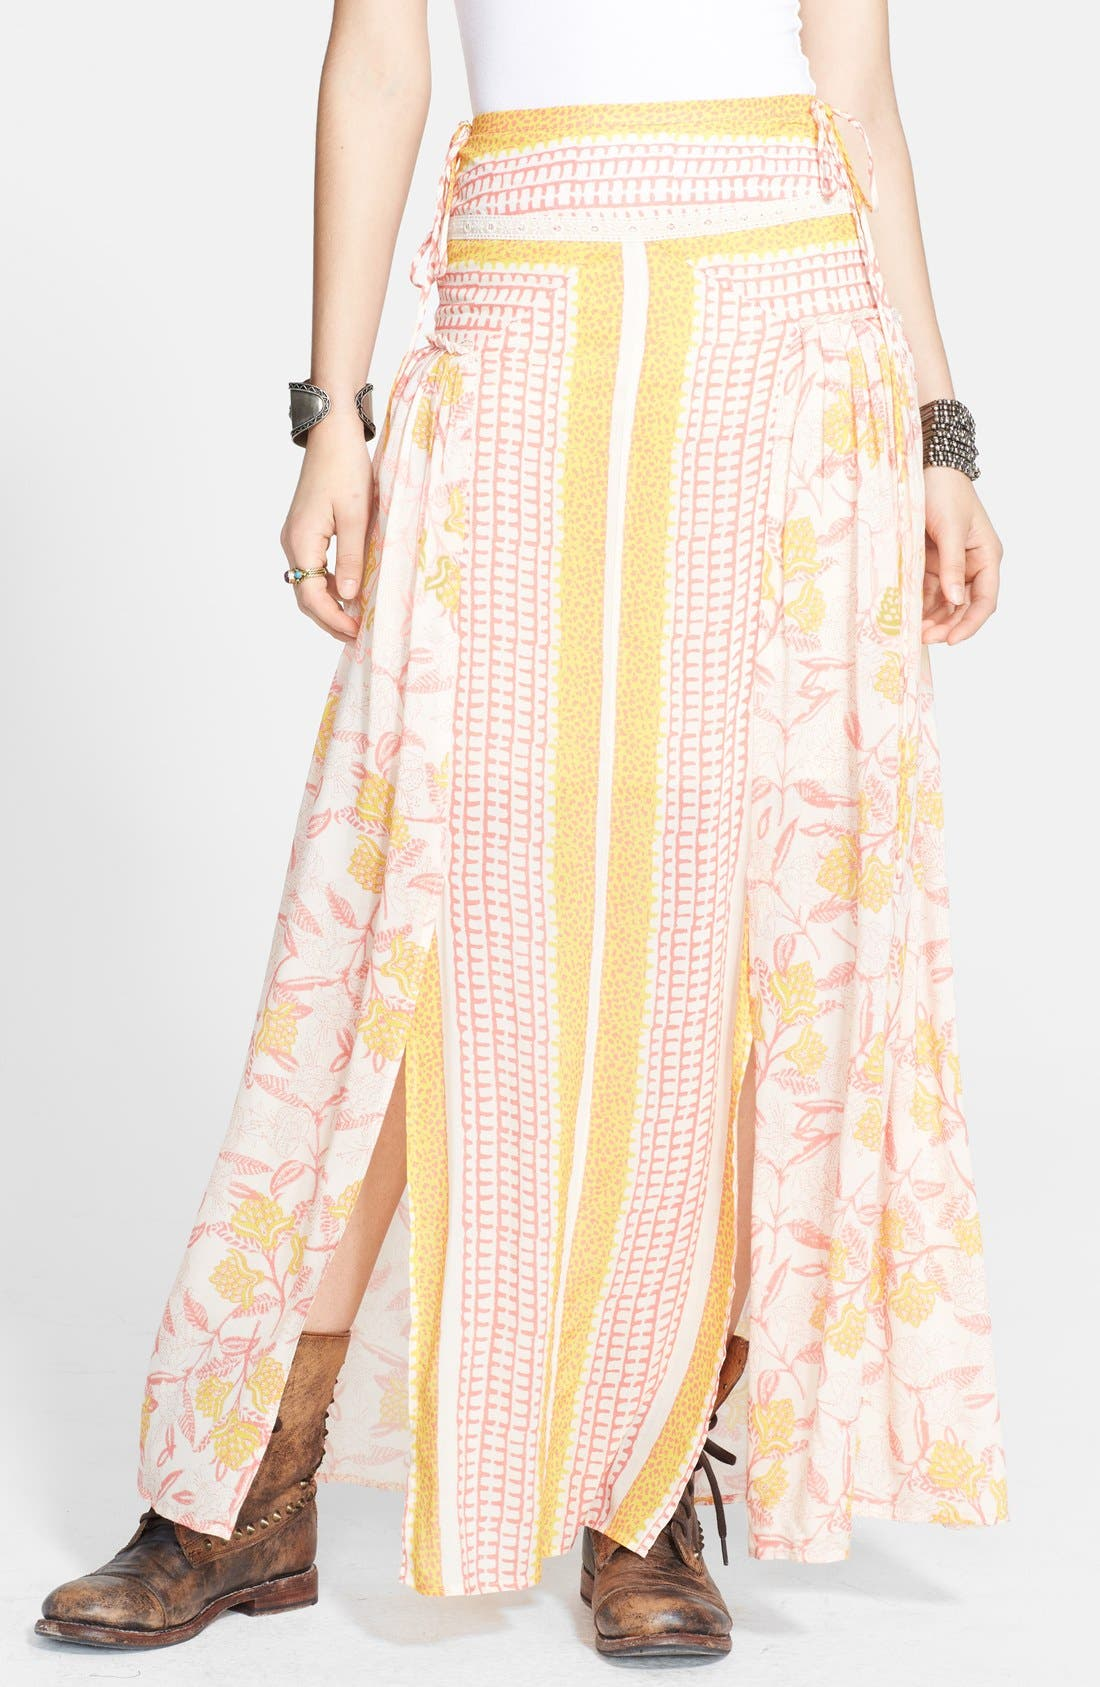 Alternate Image 1 Selected - Free People 'Squared Off' Front Slit Maxi Skirt